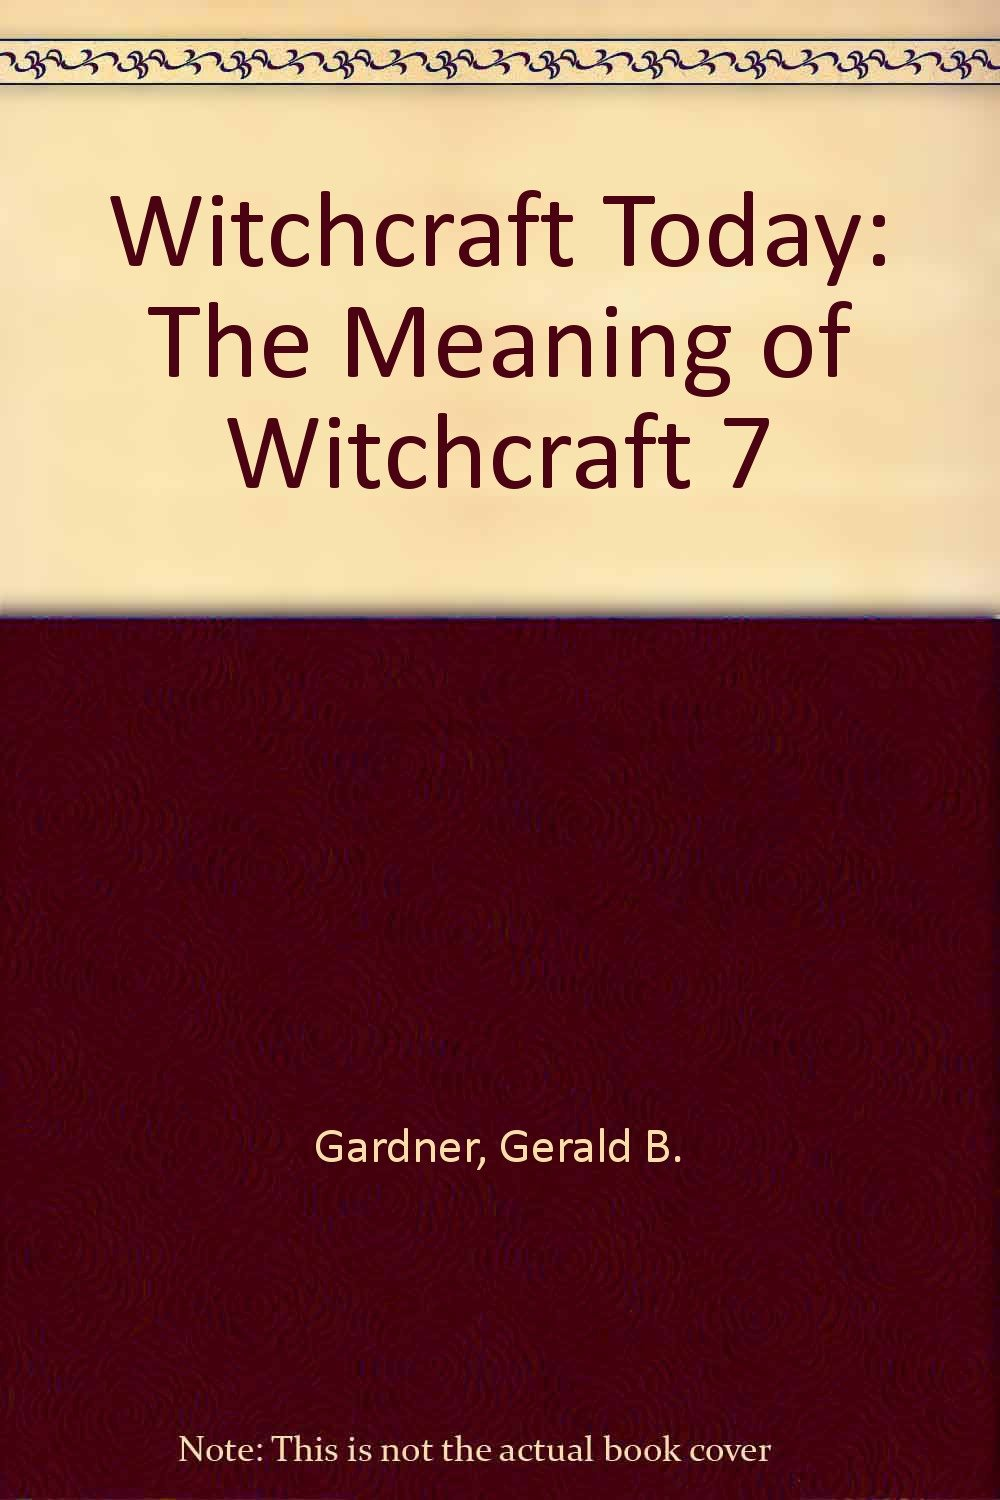 Witchcraft Today: The Meaning of Witchcraft 7: Amazon co uk